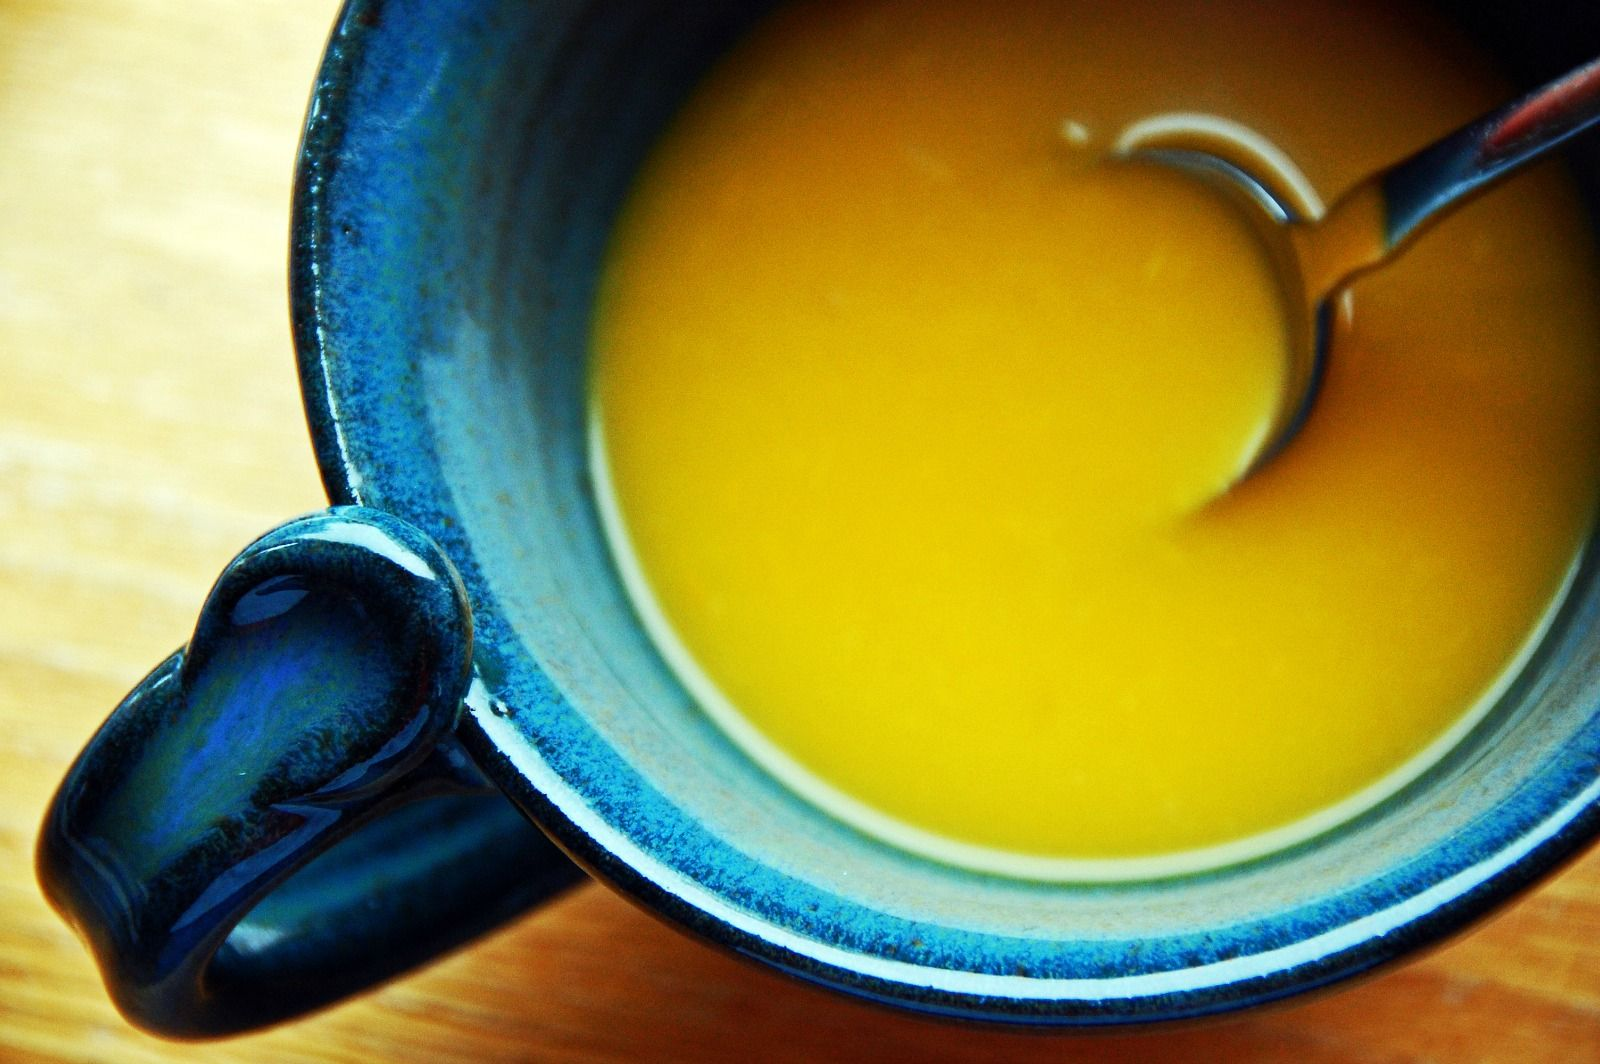 <p>If you've heard of the bone broth trend, don't be so sure you need it. This is definitely not the next green juice! Find out what bone broth is a health trend, not a health truth and see the better options instead.</p>